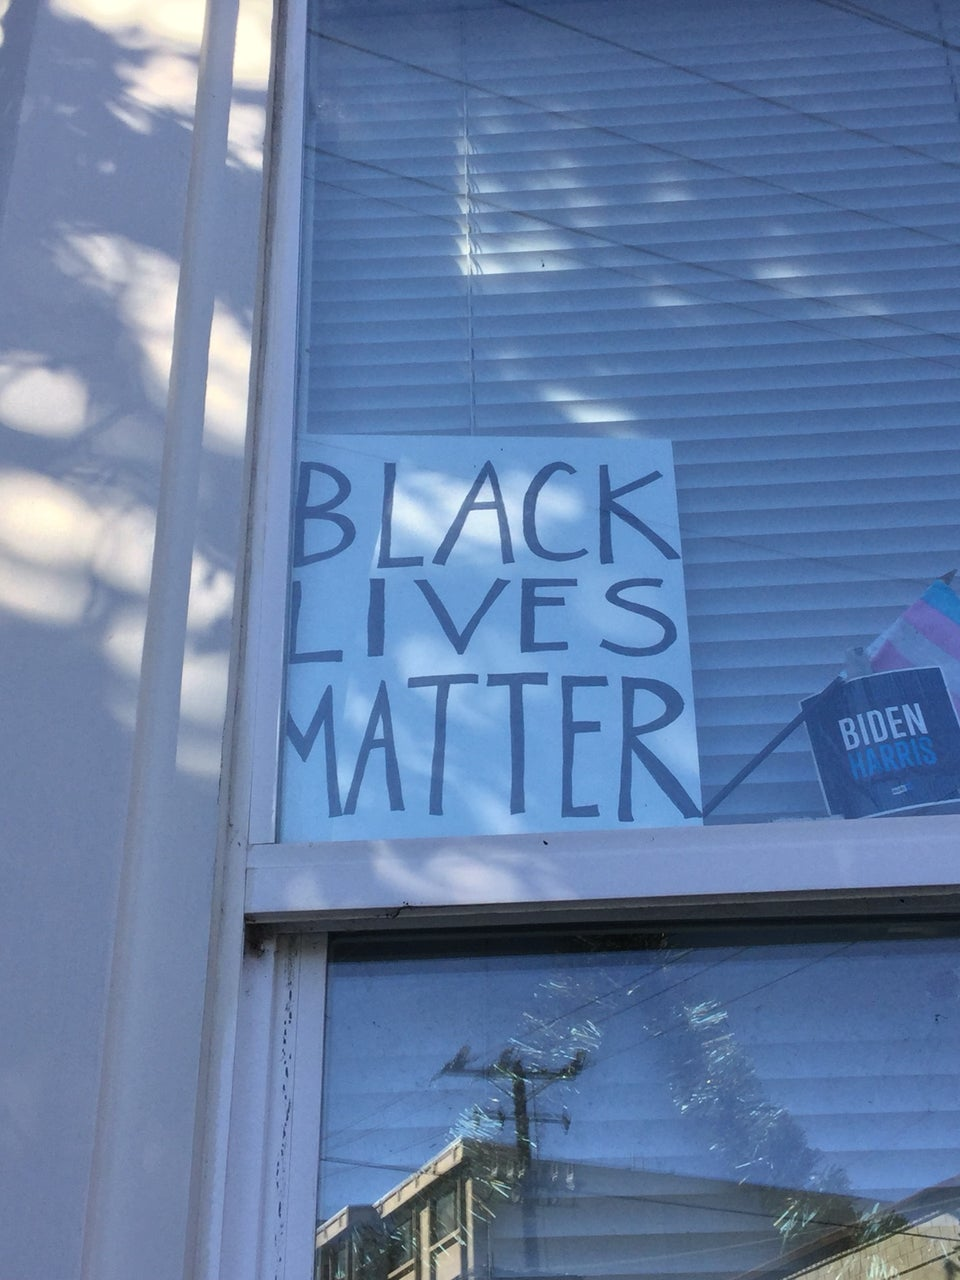 Hand drawn BLACK LIVES MATTER sign, black marker on white cardboard, inside the window of a building, mini-blinds closed behind it holding it up, a small BIDEN HARRIS sign next to it.